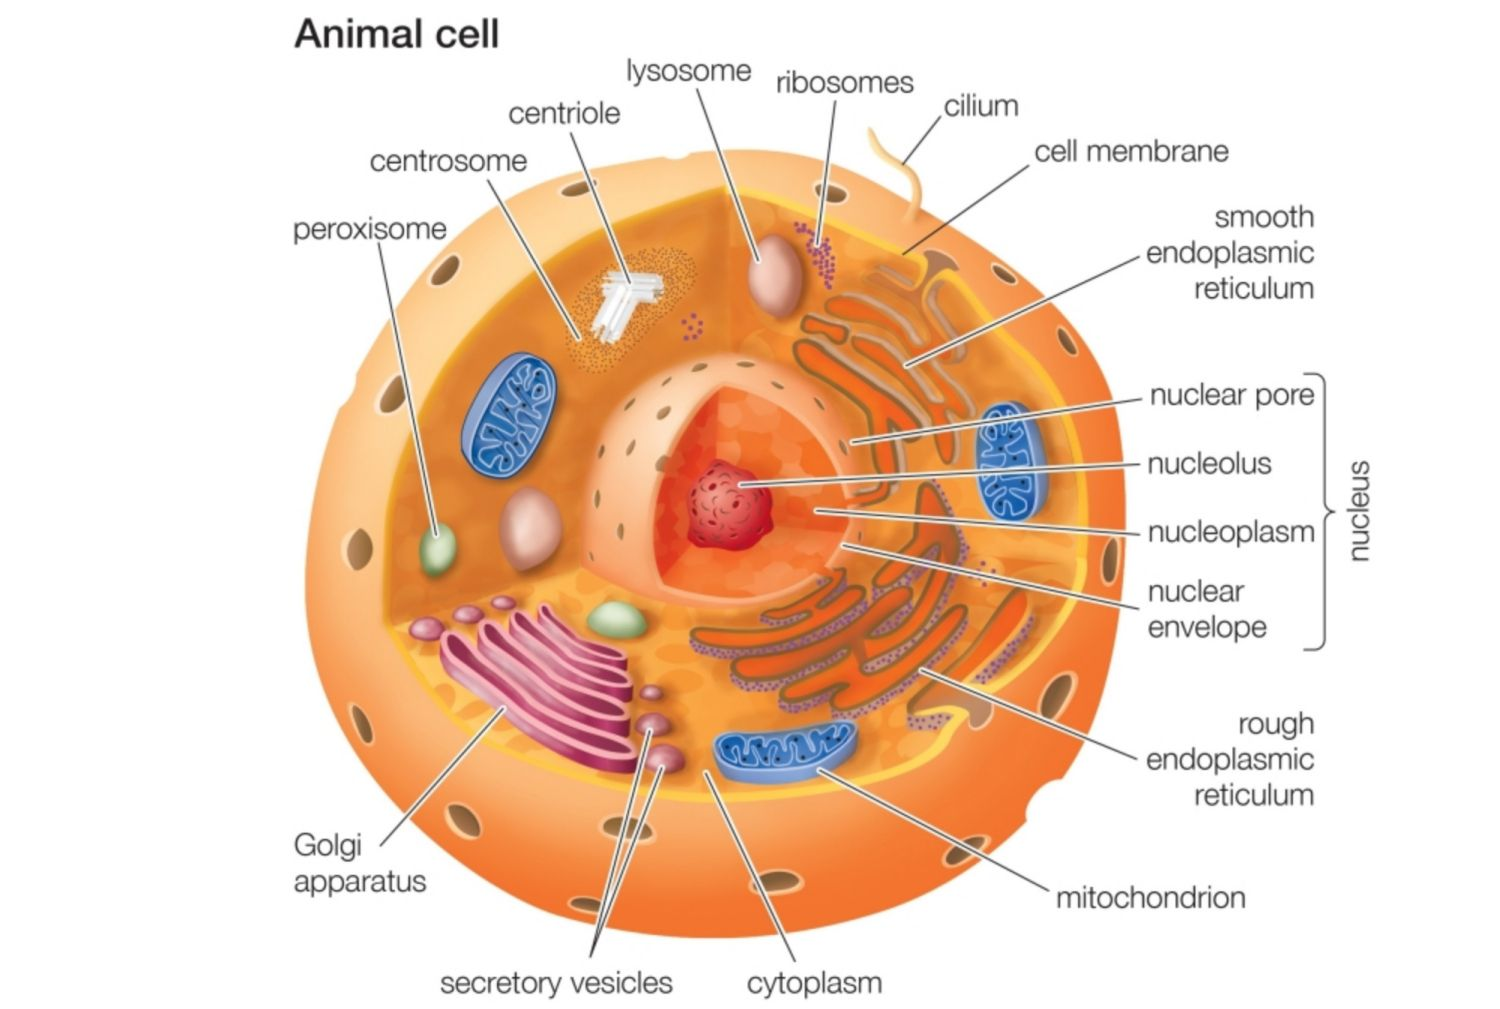 Prokaryotic Cells Diagram Below Learn About Animal And The Membrane Bound Nucleus Eukaryotic Cell